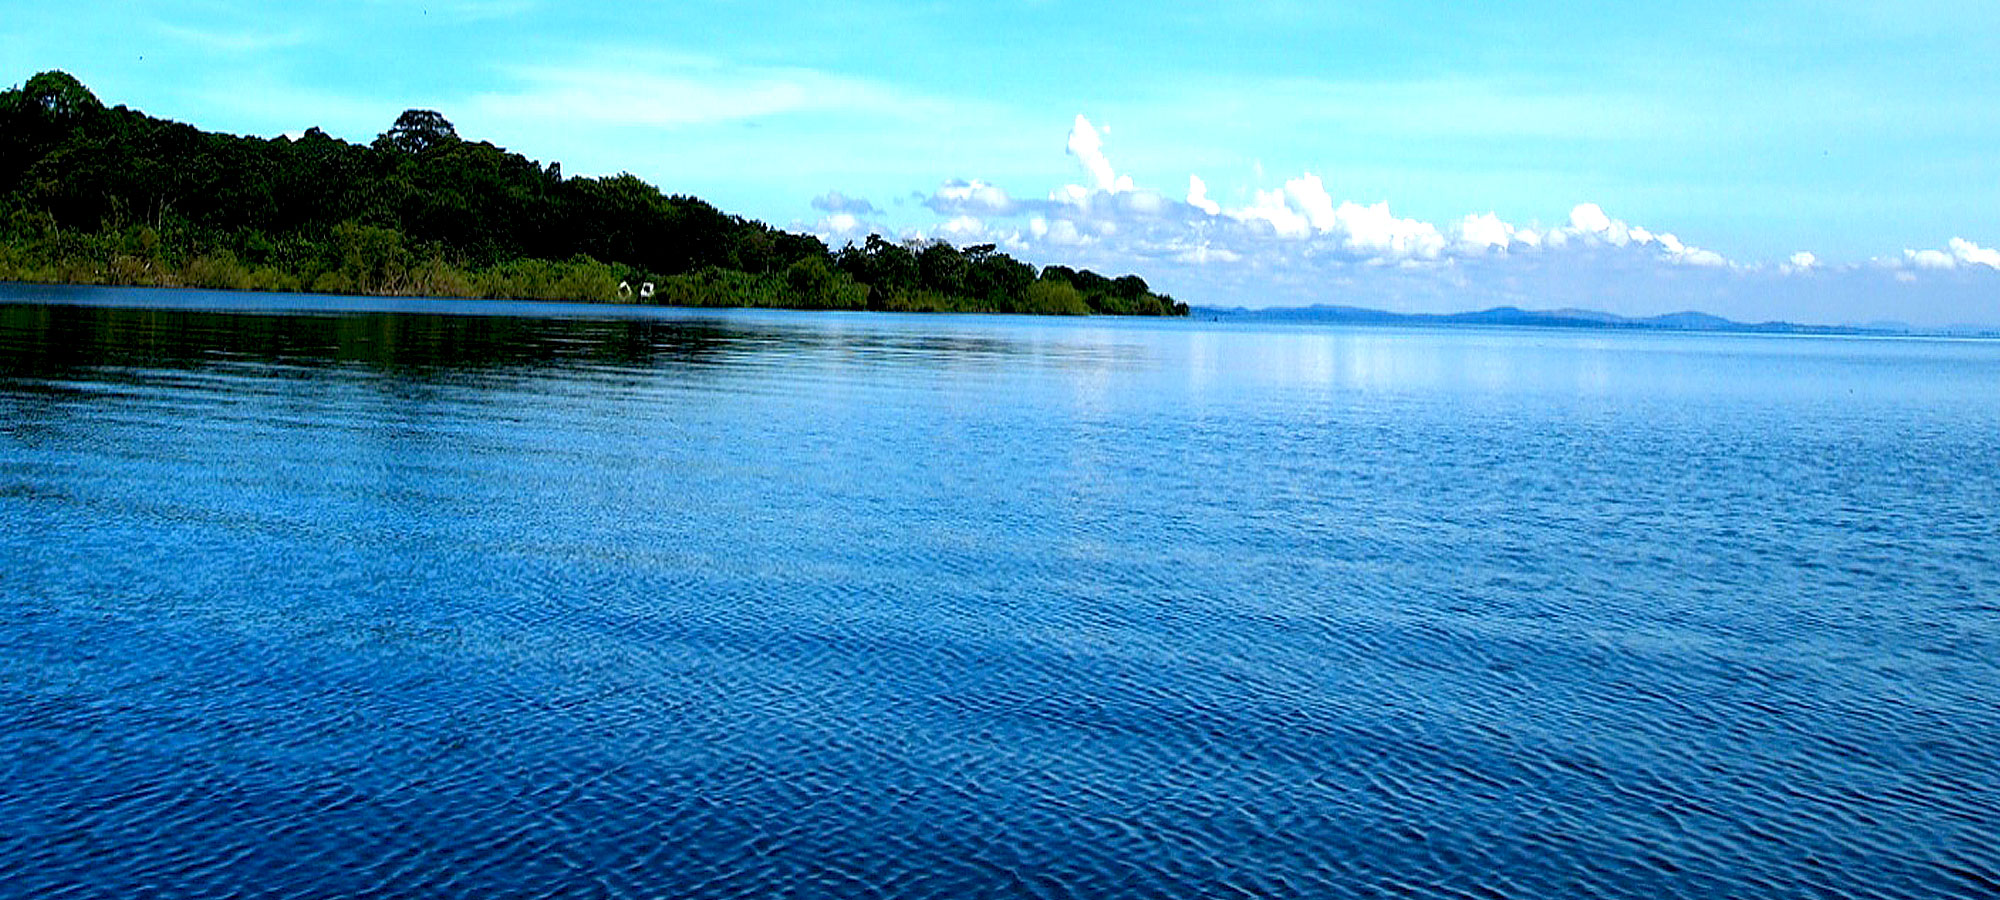 There is a sense of optimism on the shores, as authorities get together to discuss plans and ideas on how best to conserve the famed Lake. Image courtesy: Uganda Tourism